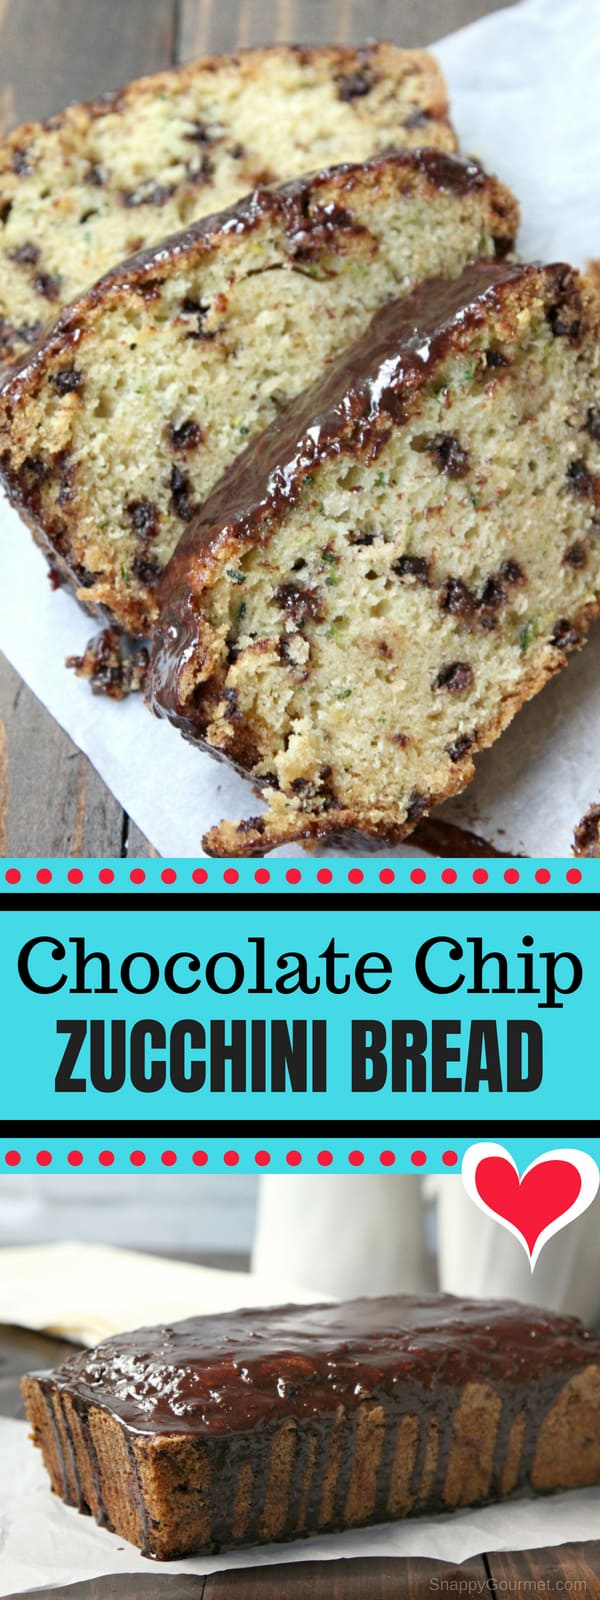 Chocolate Chip Zucchini Bread, moist zucchini bread from scratch loaded with chocolate chips! An easy quick bread recipe and the best way to use up zucchini! #Zucchini #Bread #Recipe #SnappyGourmet #ZucchiniBread #Chocolate #Dessert #Snack #Summer #Veggies